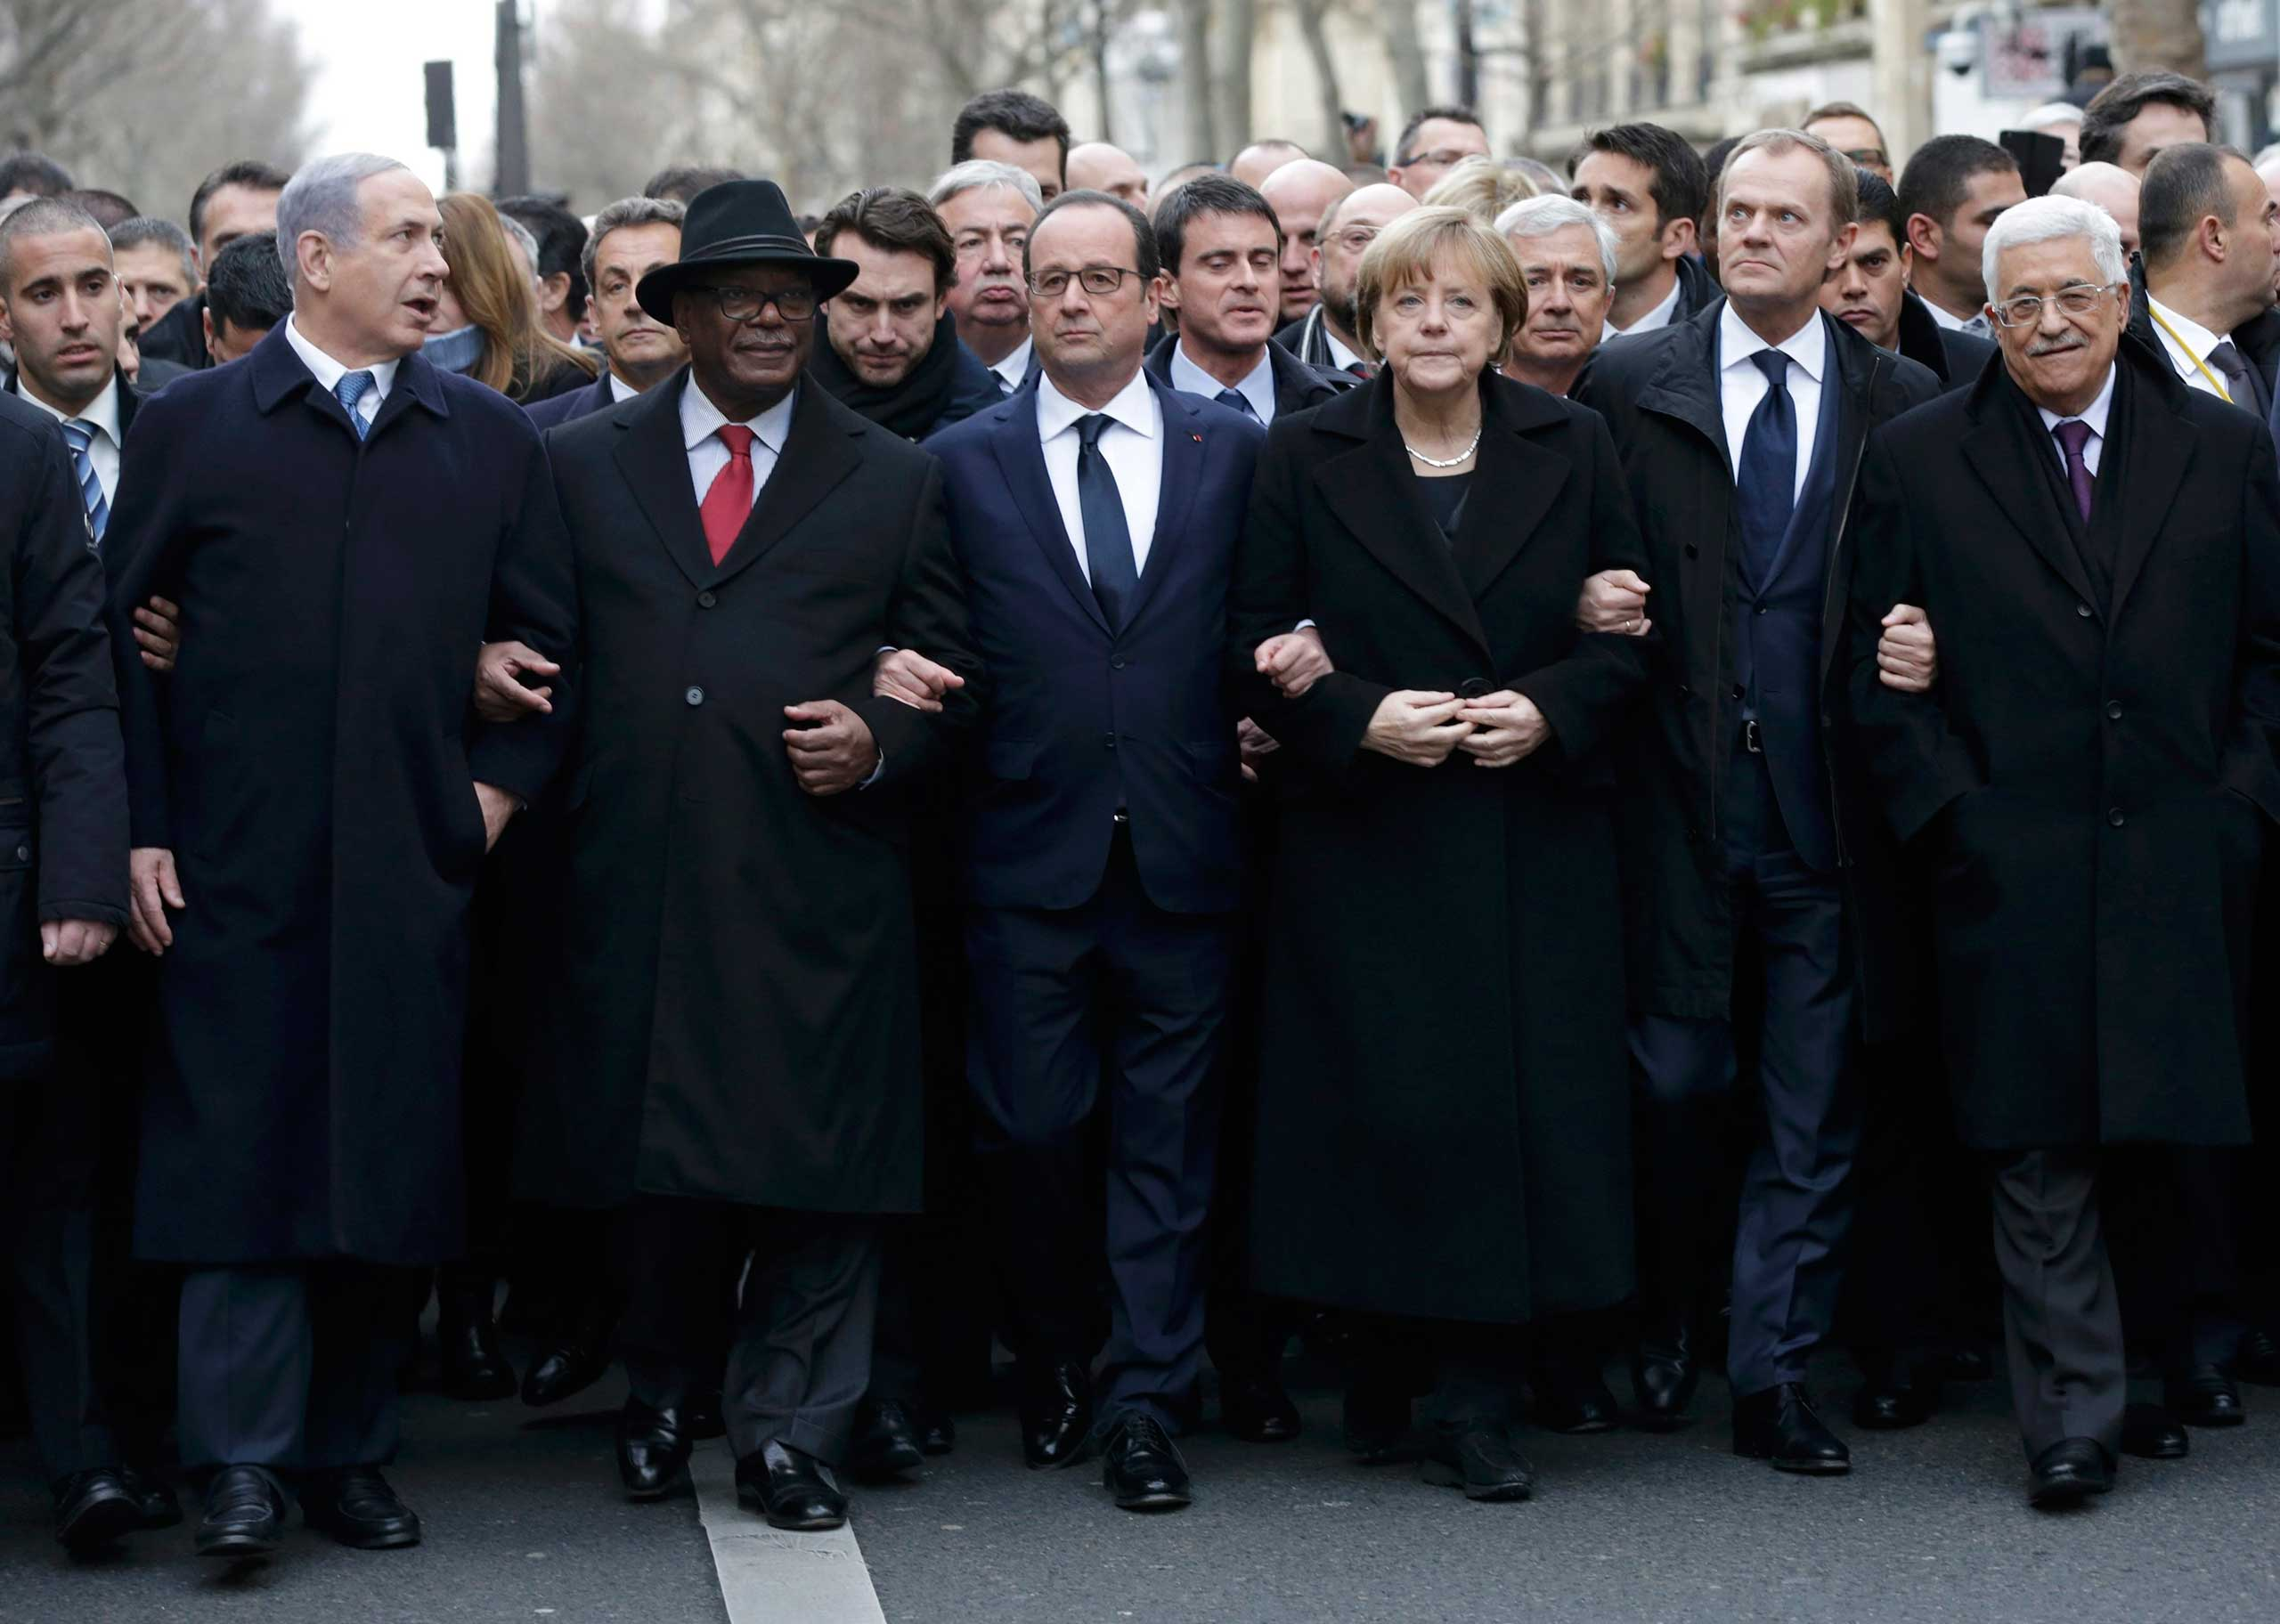 French President Francois Hollande is surrounded by head of states including Israel's Prime Minister Benjamin Netanyahu, Mali's President Ibrahim Boubacar Keita, Germany's Chancellor Angela Merkel, European Council President Donald Tusk and Palestinian President Mahmoud Abbas as they attend the solidarity march in the streets of Paris Jan. 11, 2015.